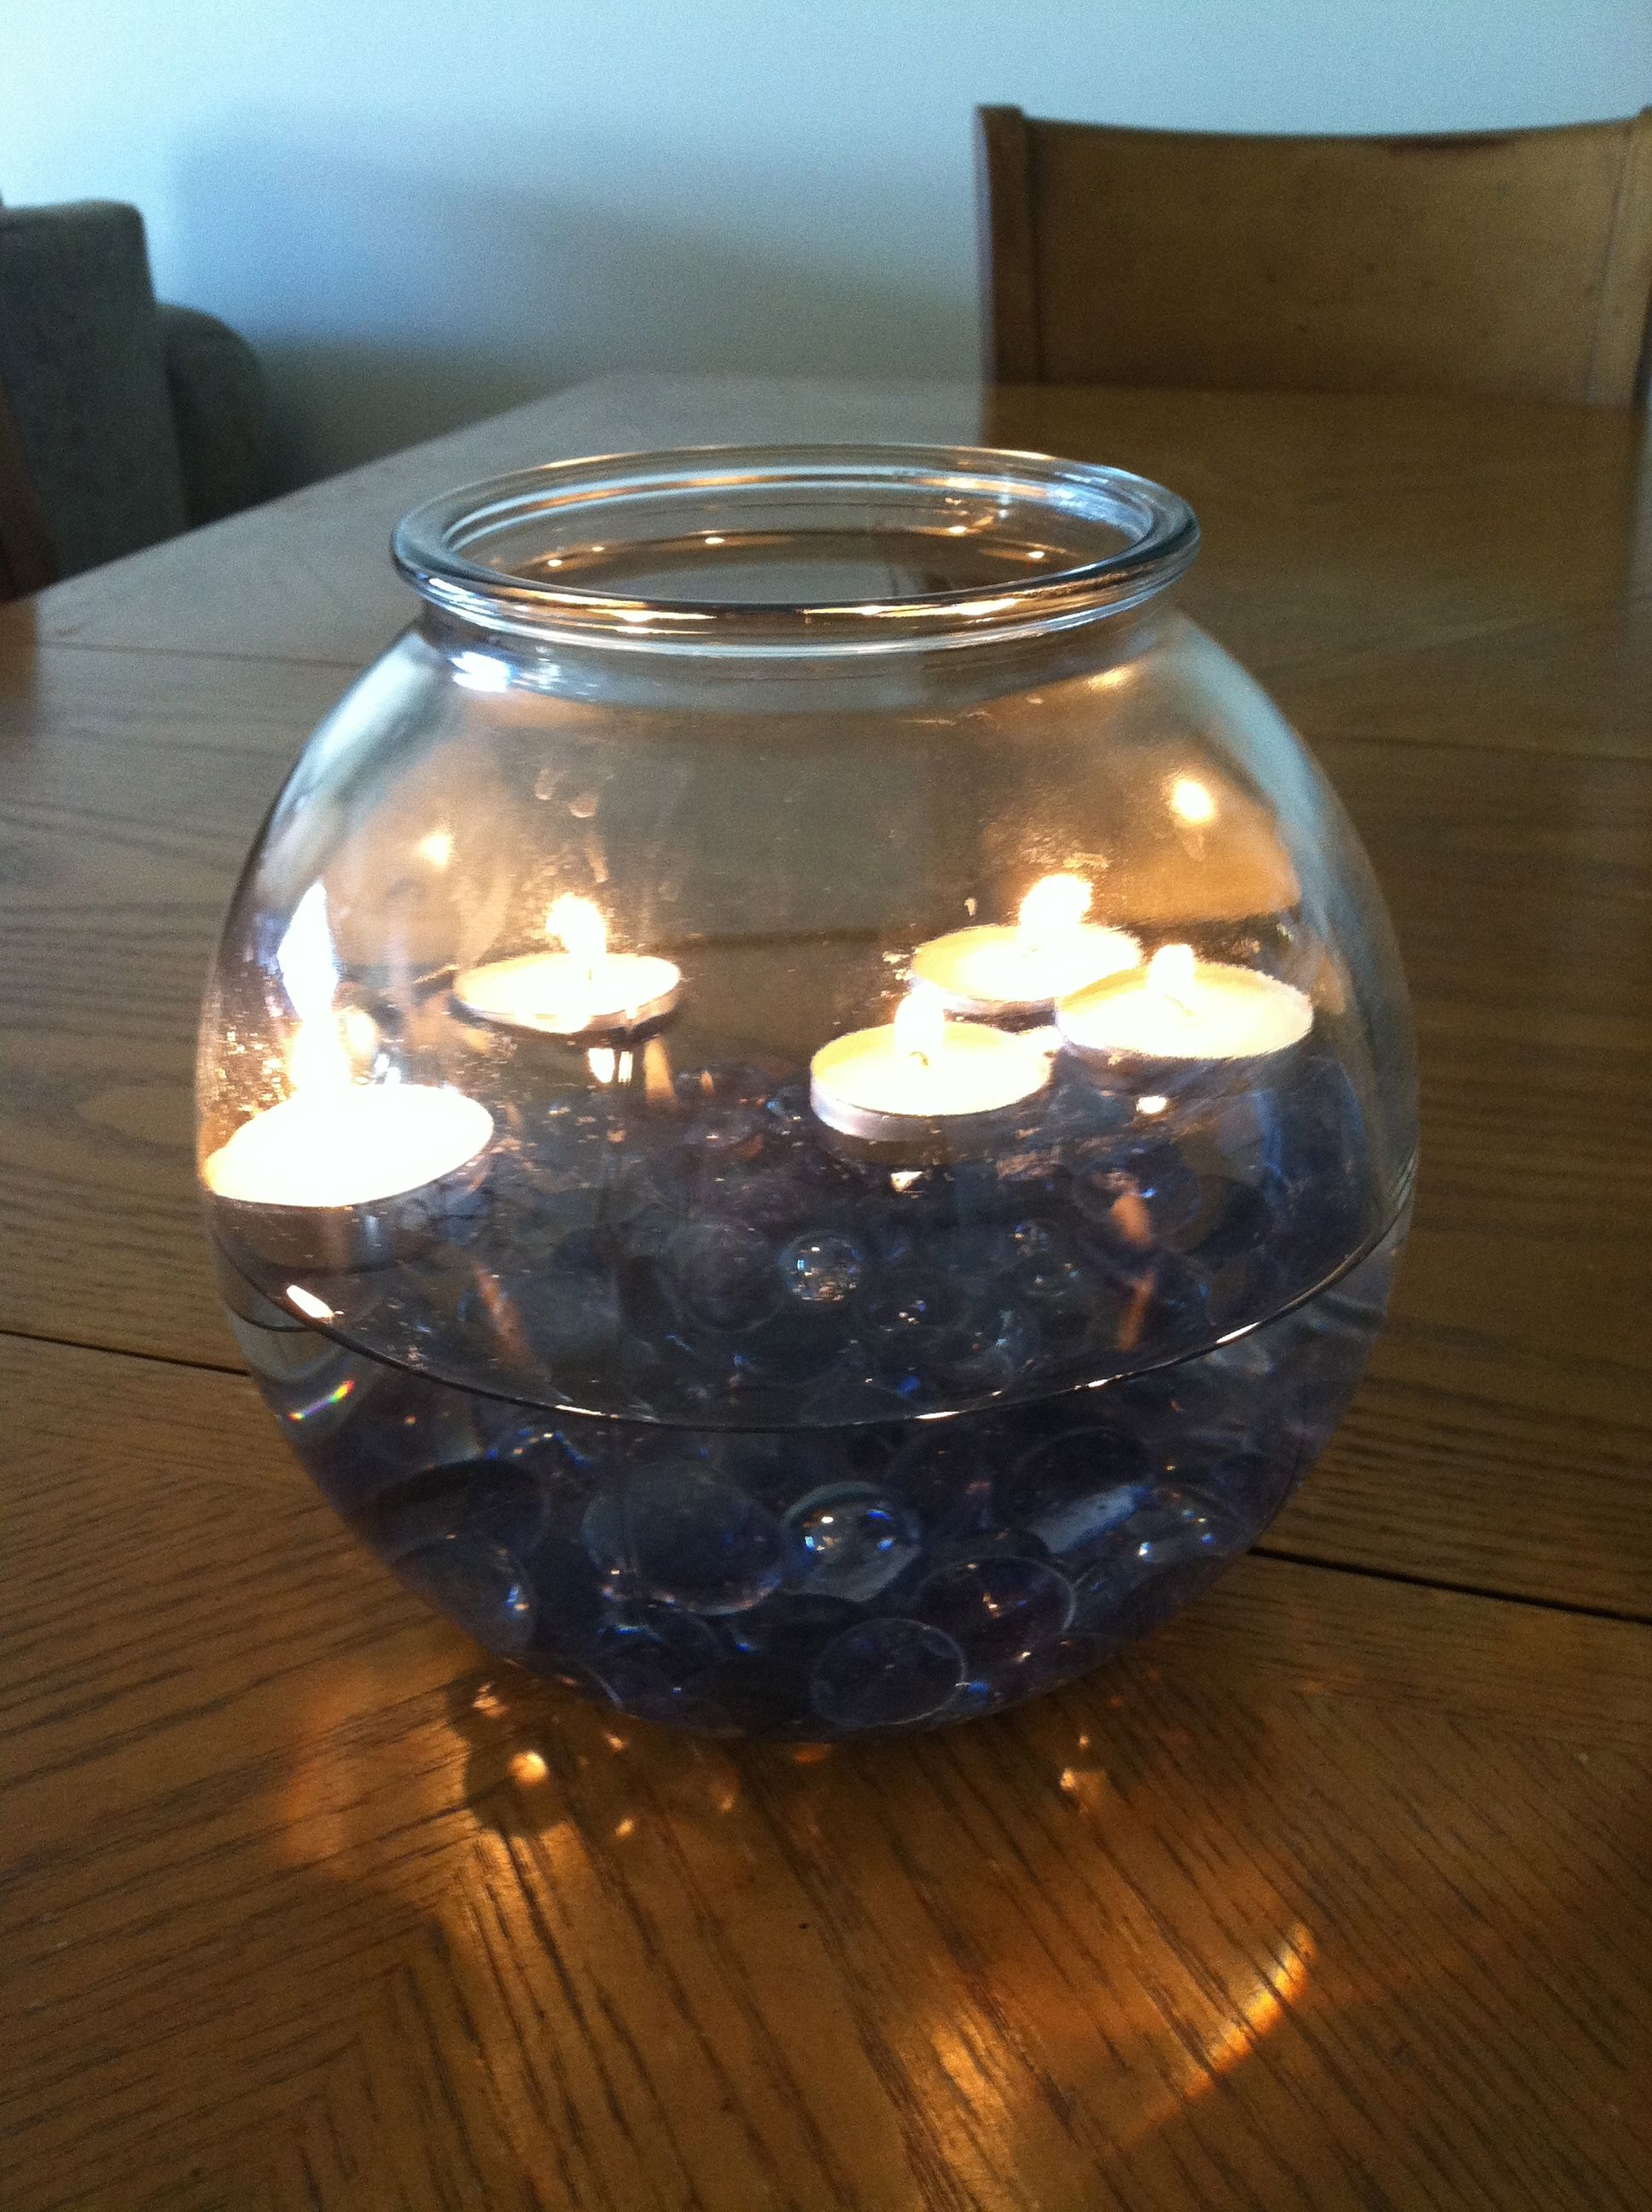 Fill your fish bowl with sand, and add decorative sea shells. The trick is to arrange the shells in a cluster, using very large to very small shells to give depth and to draw the eye to .